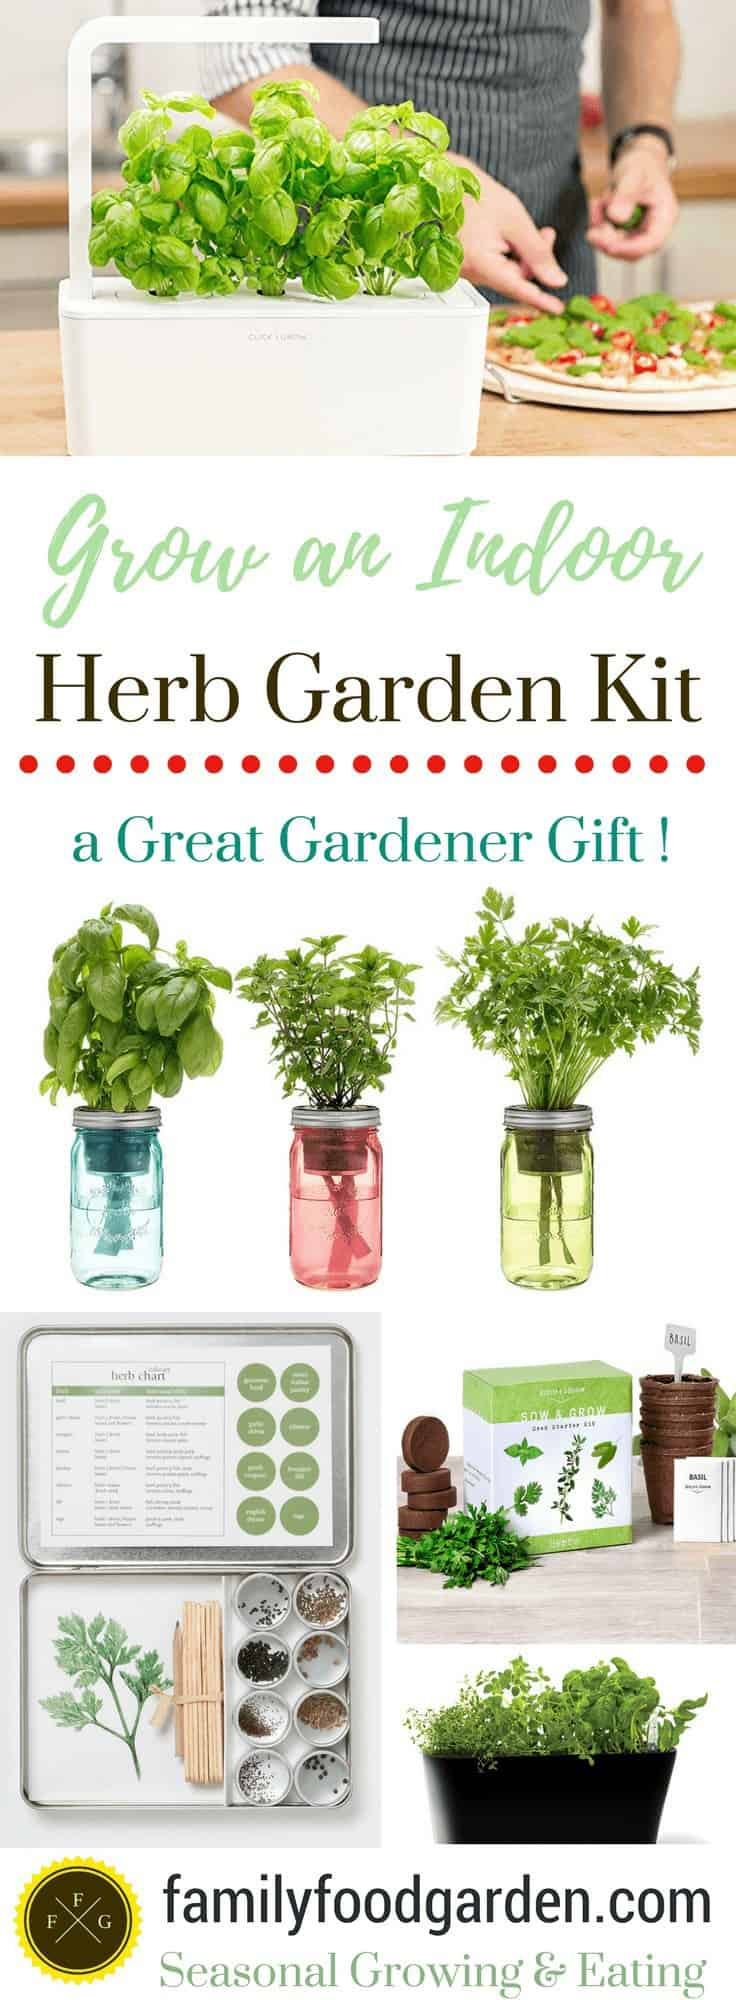 Grow an Indoor Herb Garden with a Herb Garden Kit